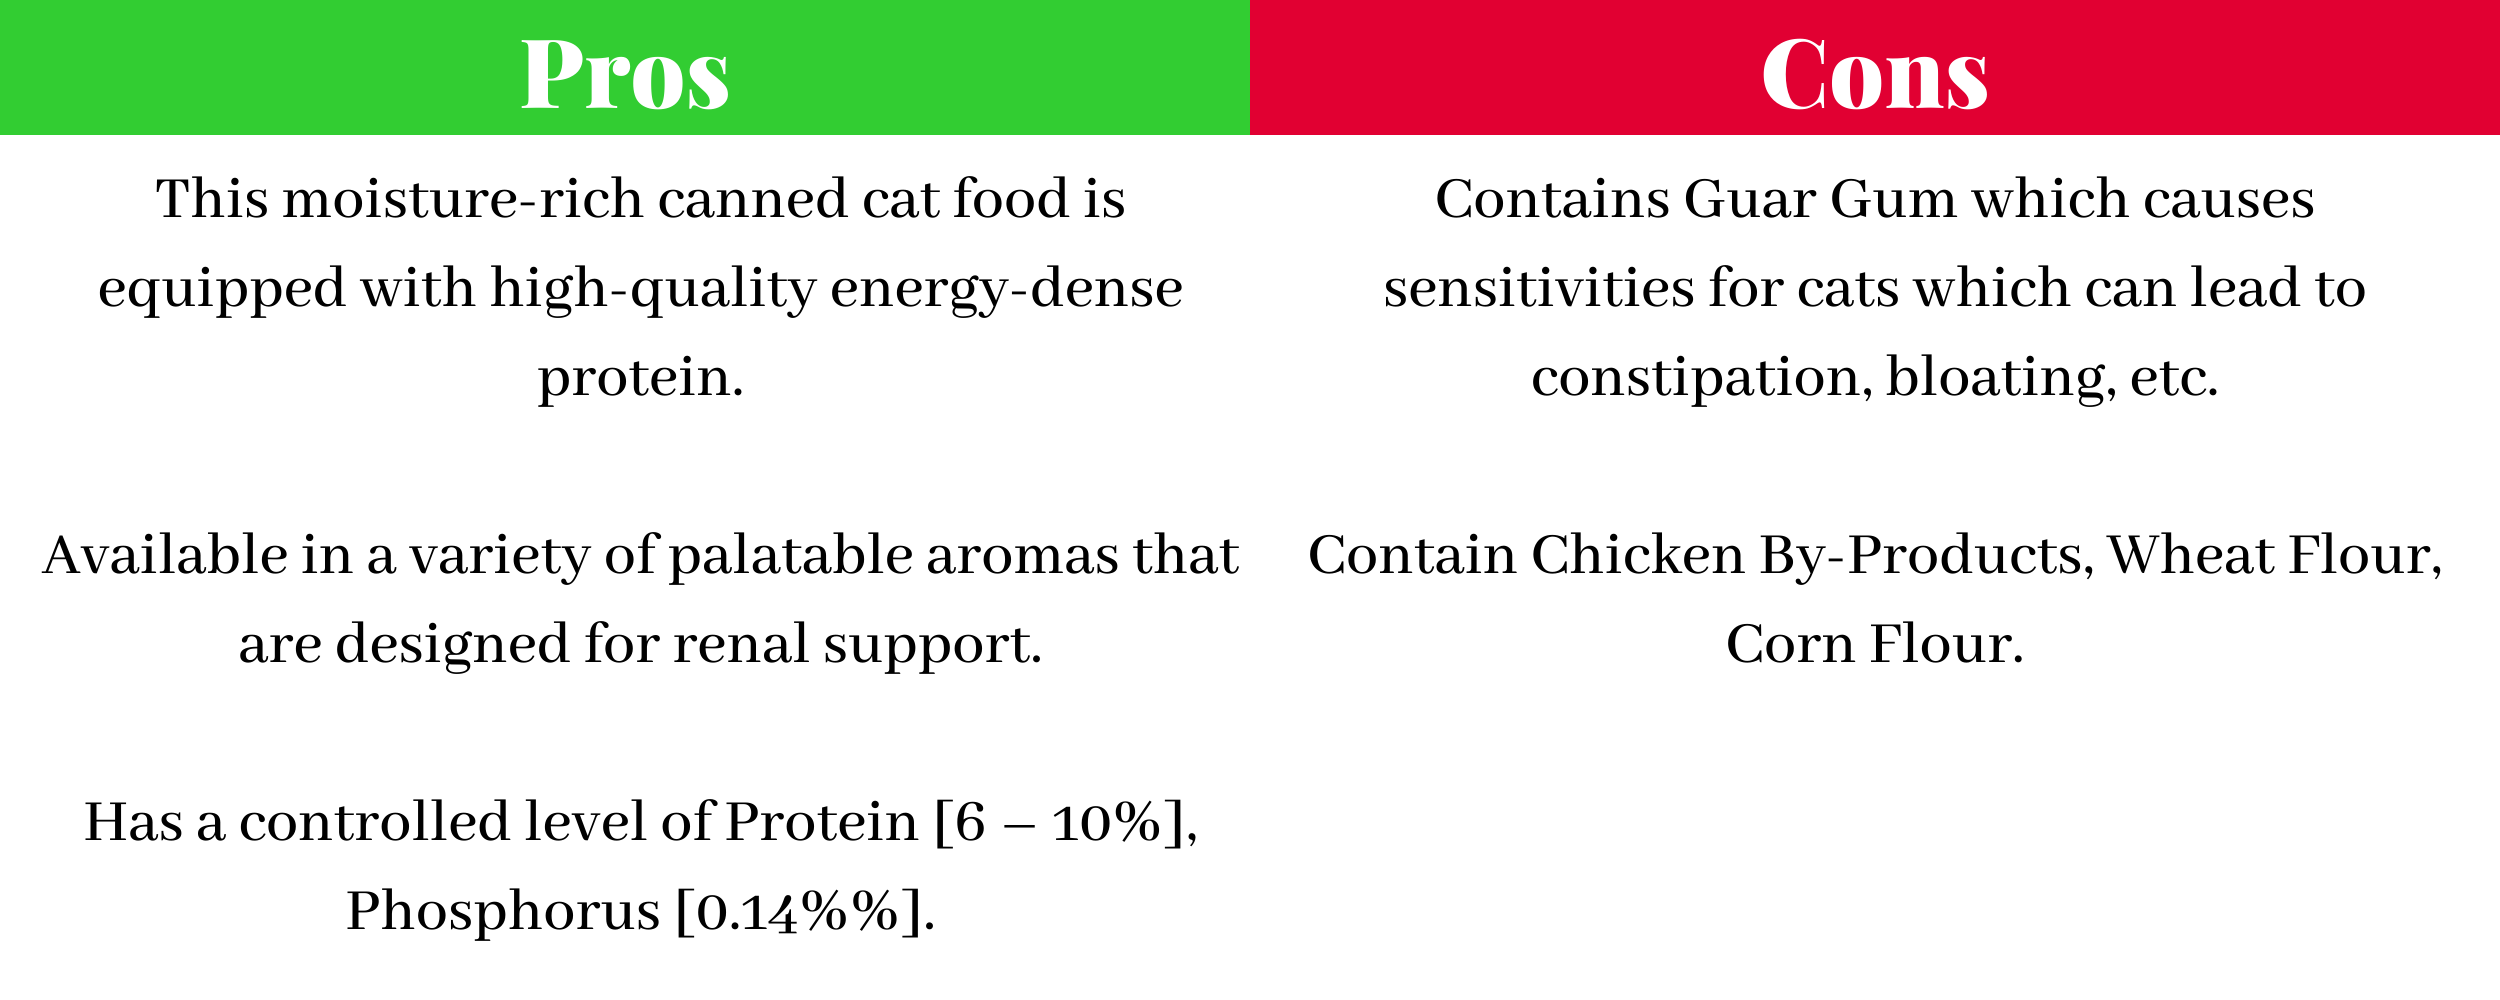 Pros and Cons of Royal Canin Veterinary Diet Feline Renal Support D Morsels in Gravy Canned Cat Food